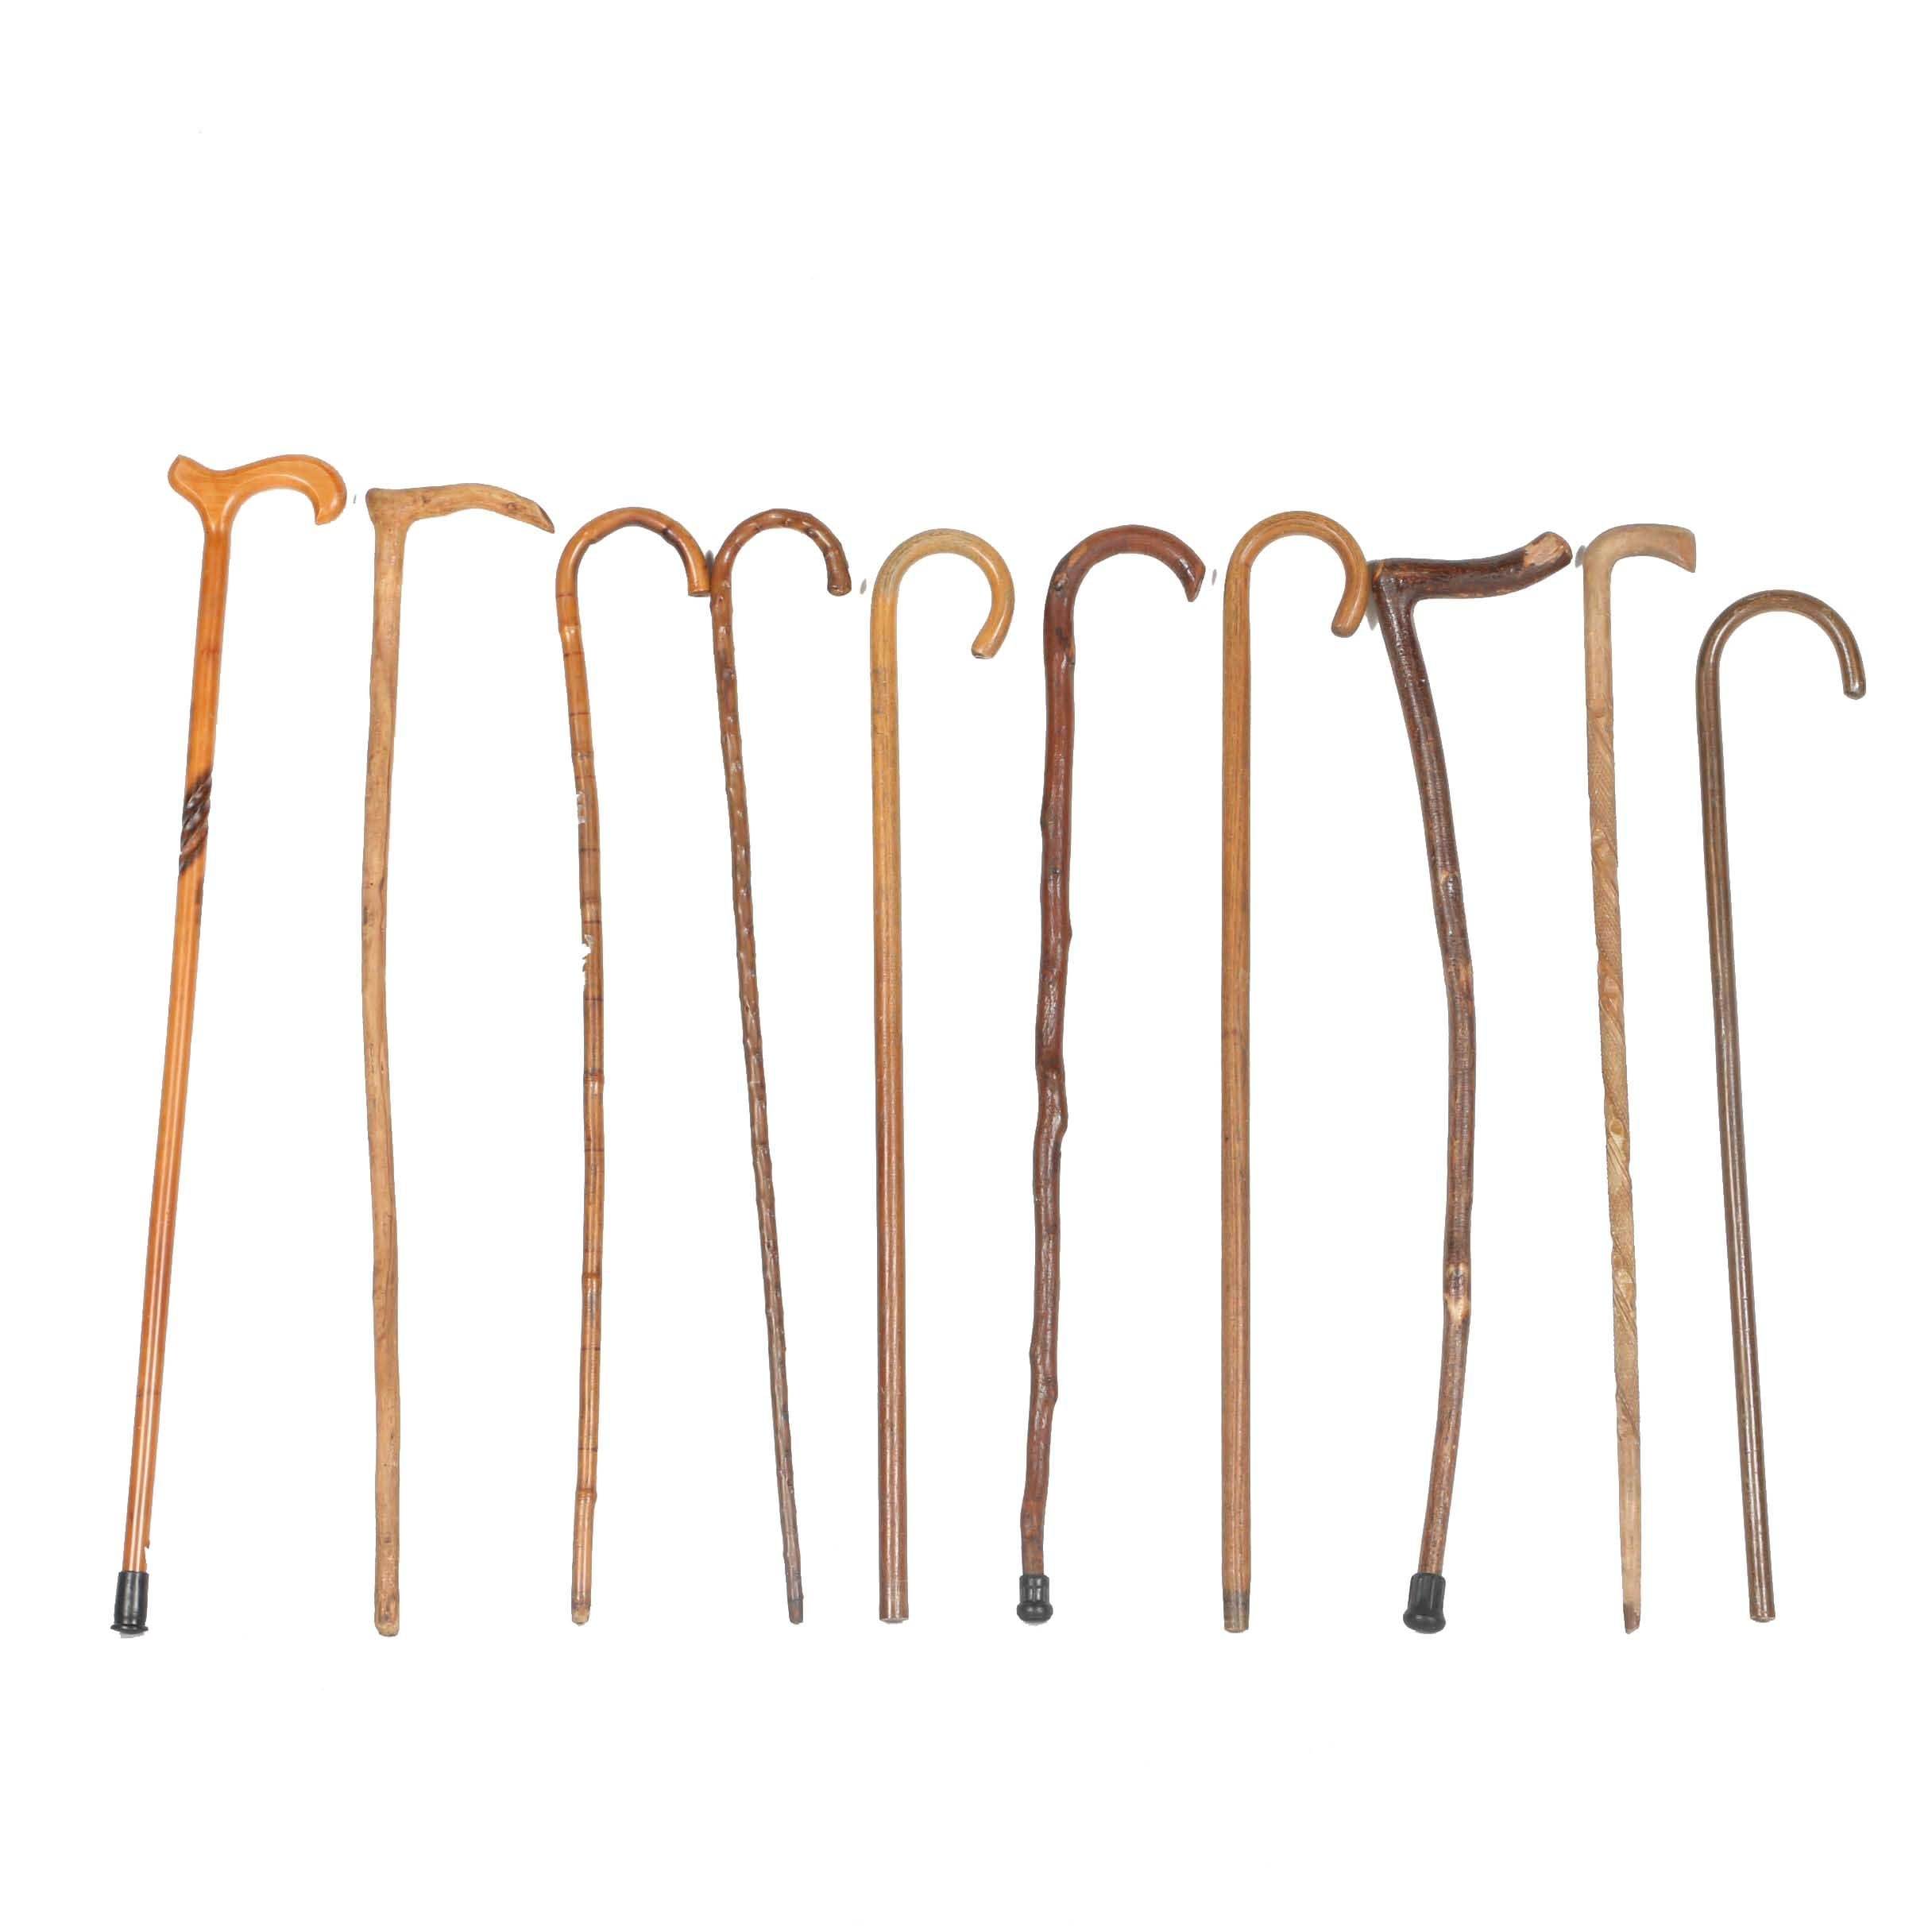 Assorted Wood Walking Canes